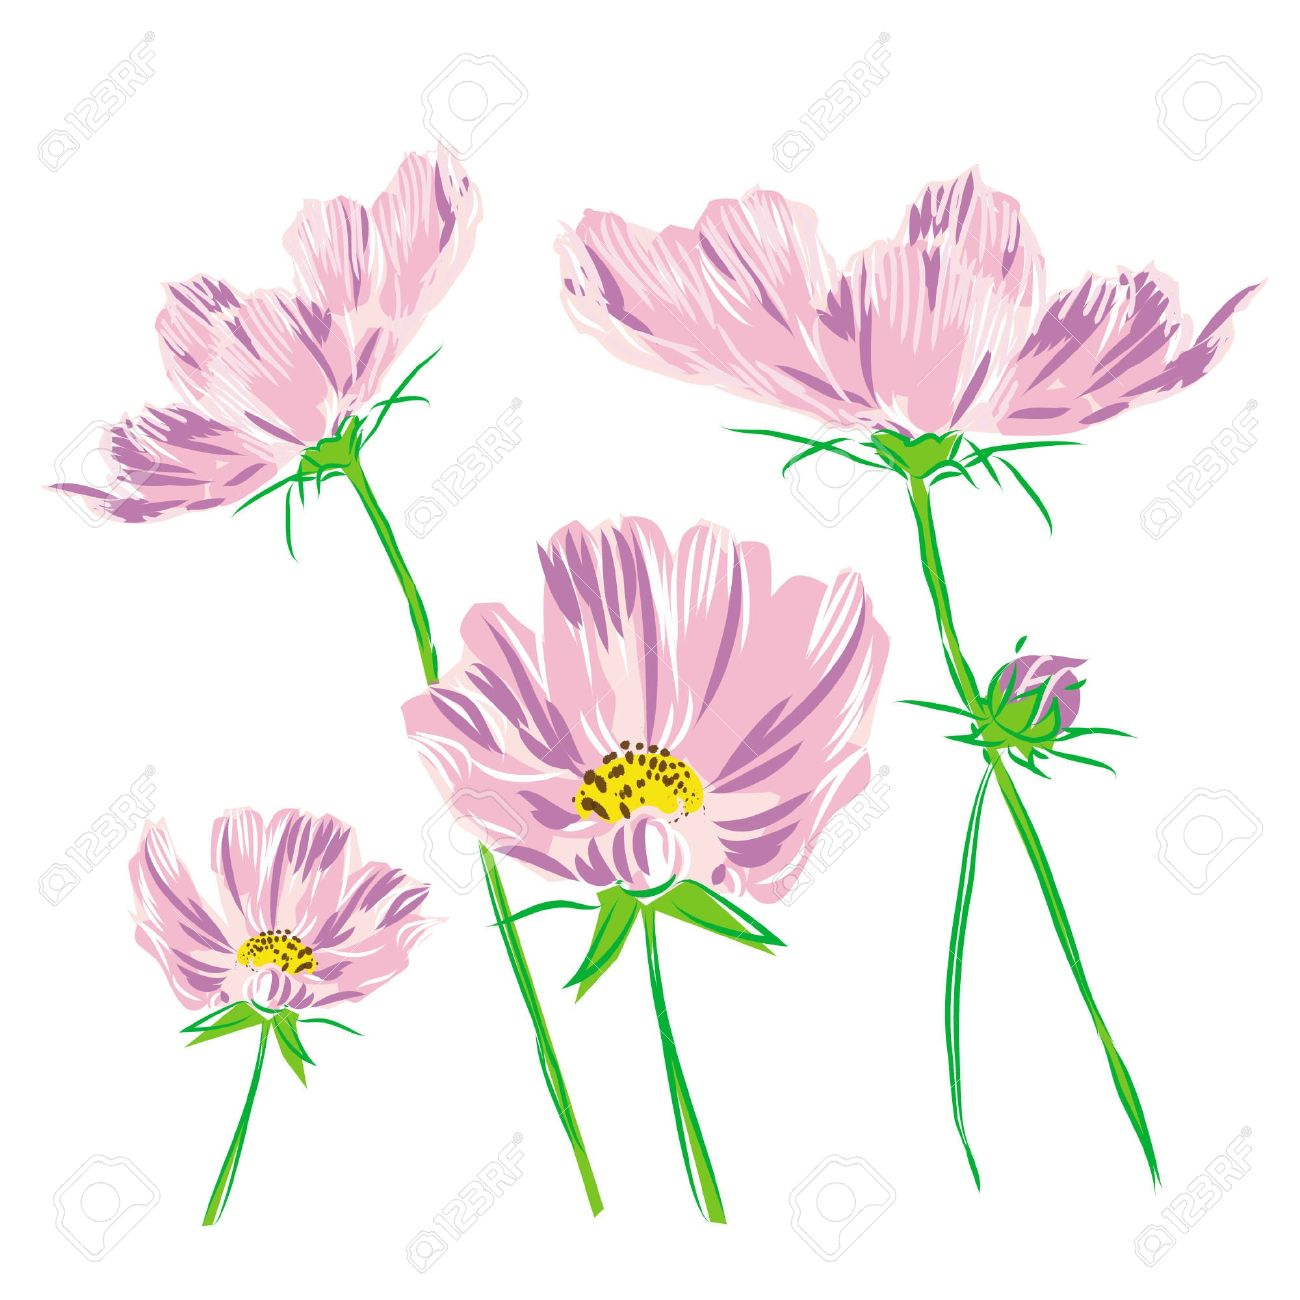 Bouquet Flower Cosmos Bipinnatus Isolated On White Background.